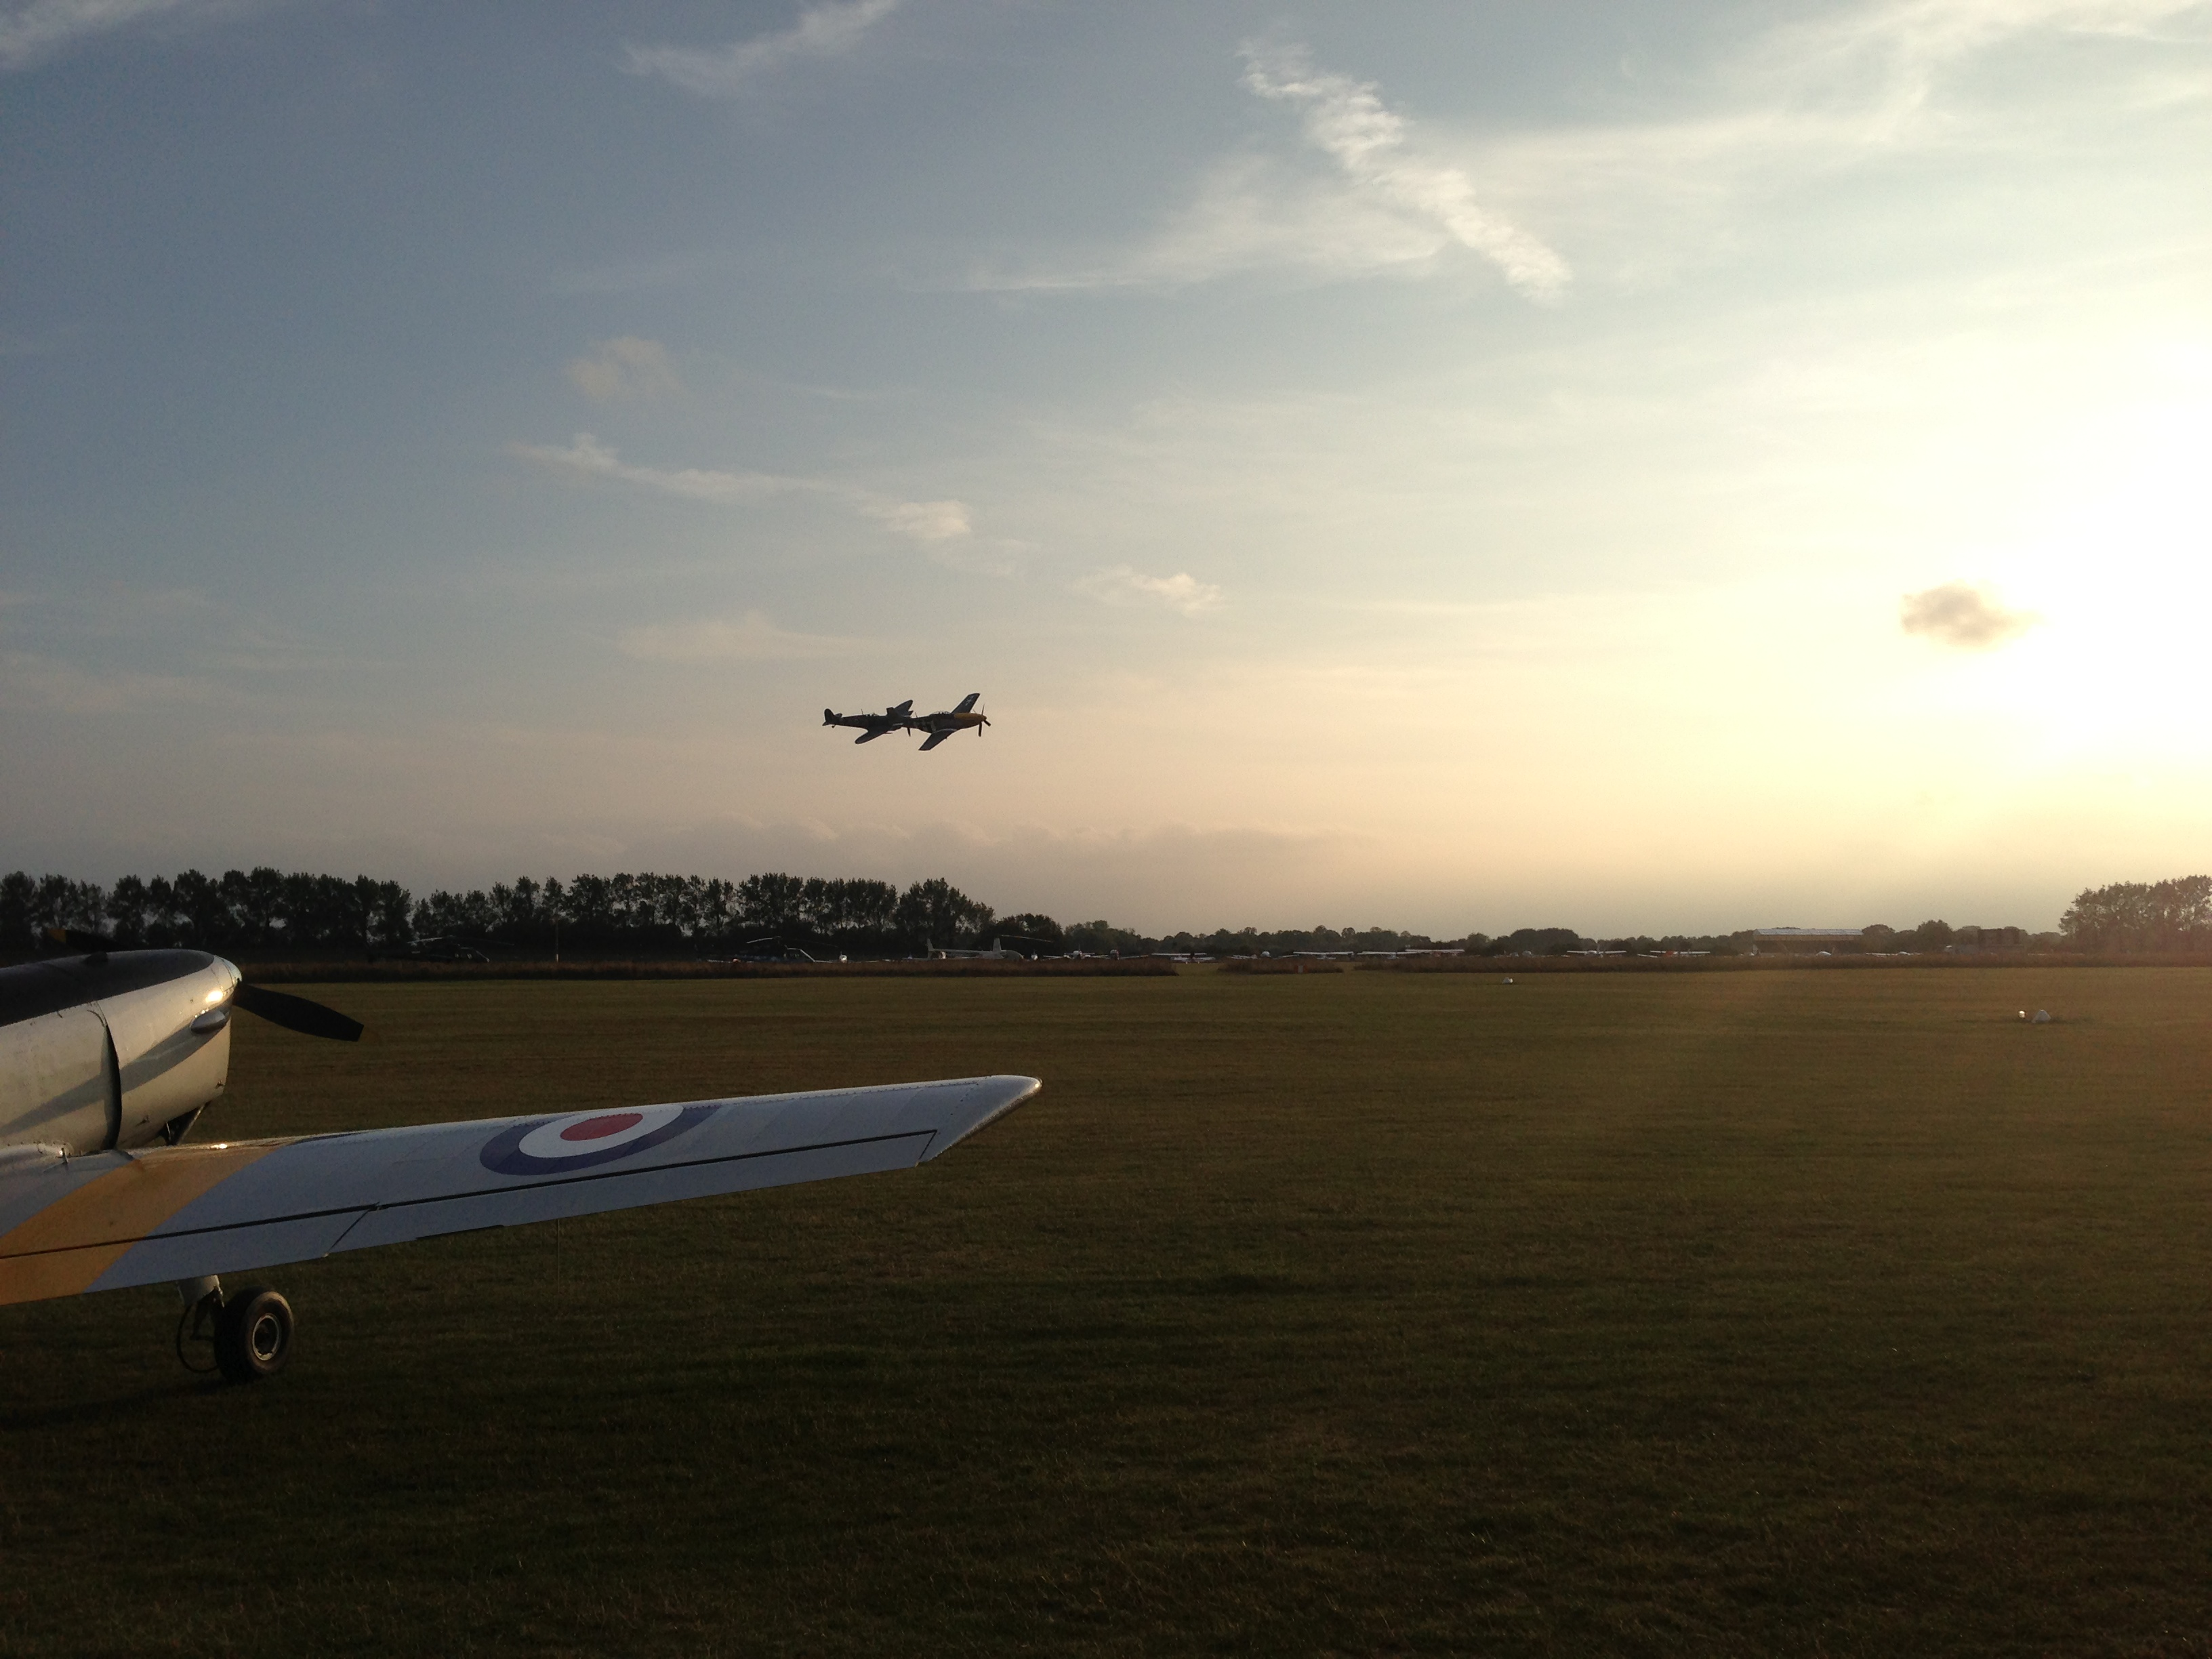 Two Spitfires above Goodwood airfield